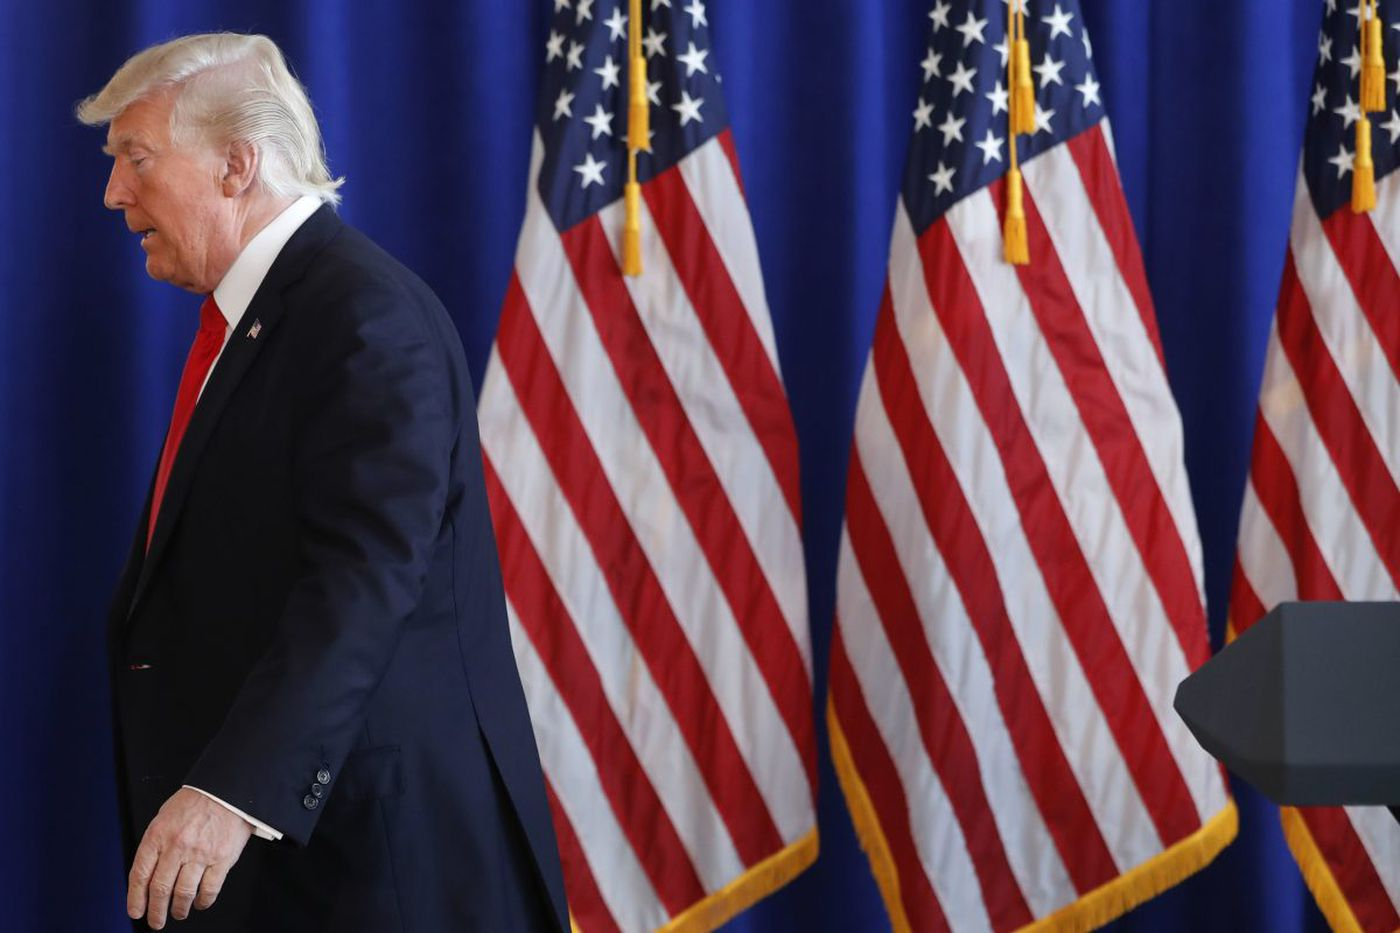 Trump's shameful moral void on Charlottesville leaves America without a leader